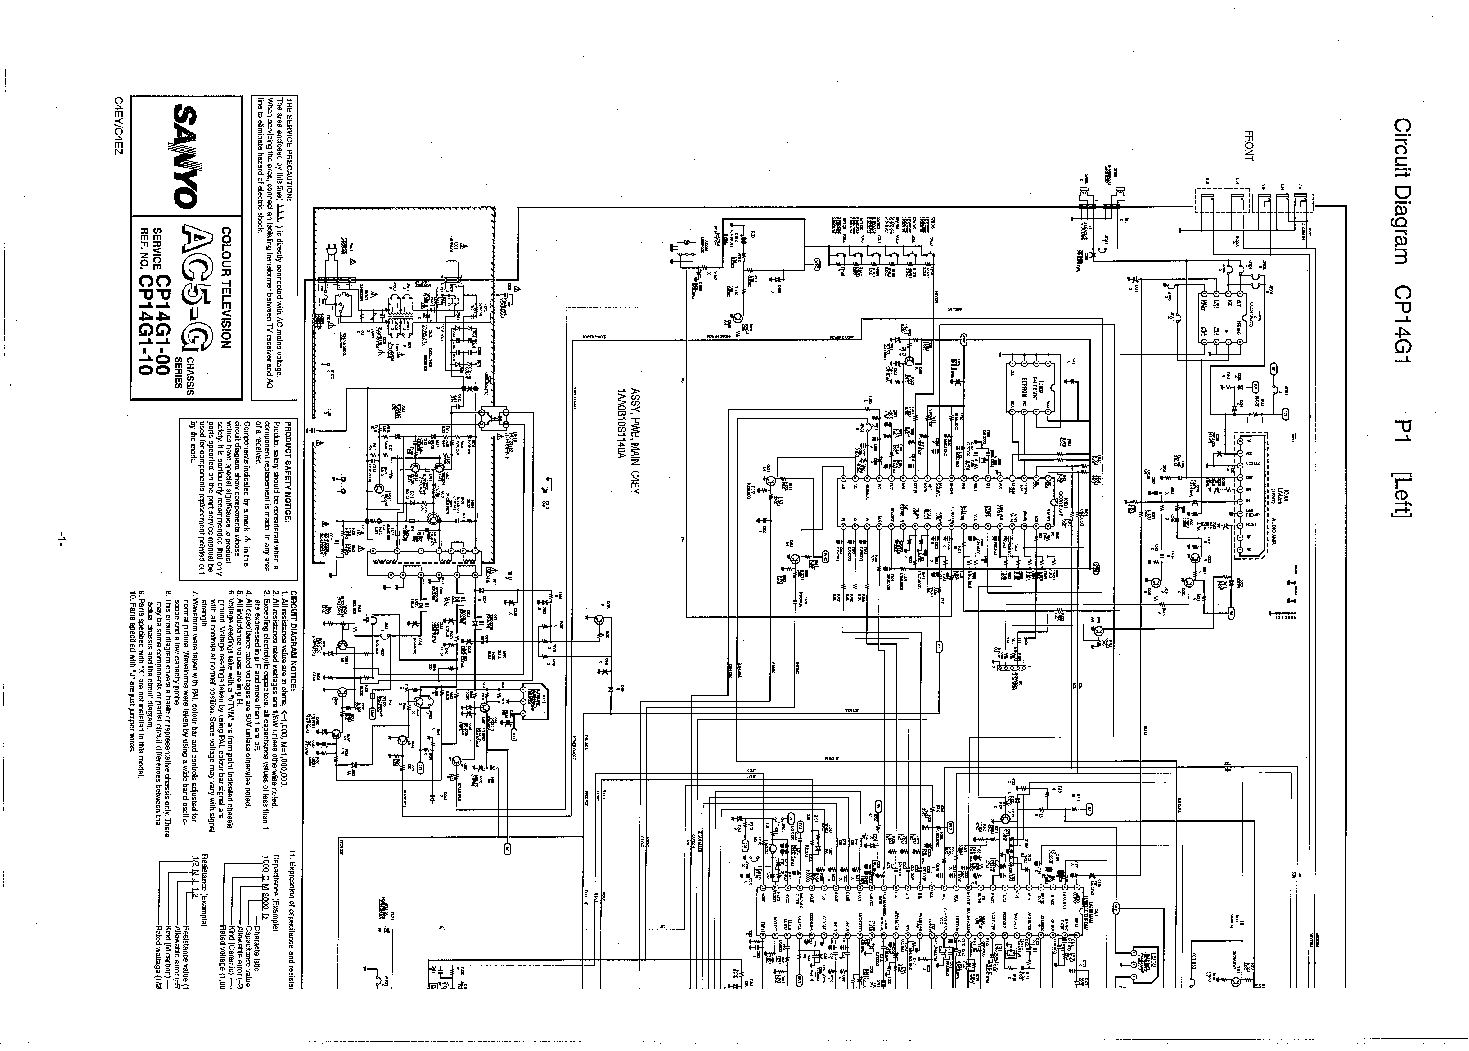 hight resolution of sanyo schematic diagram tv wiring diagram forward tv sanyo c27lw33s diagrama sanyo tv diagram